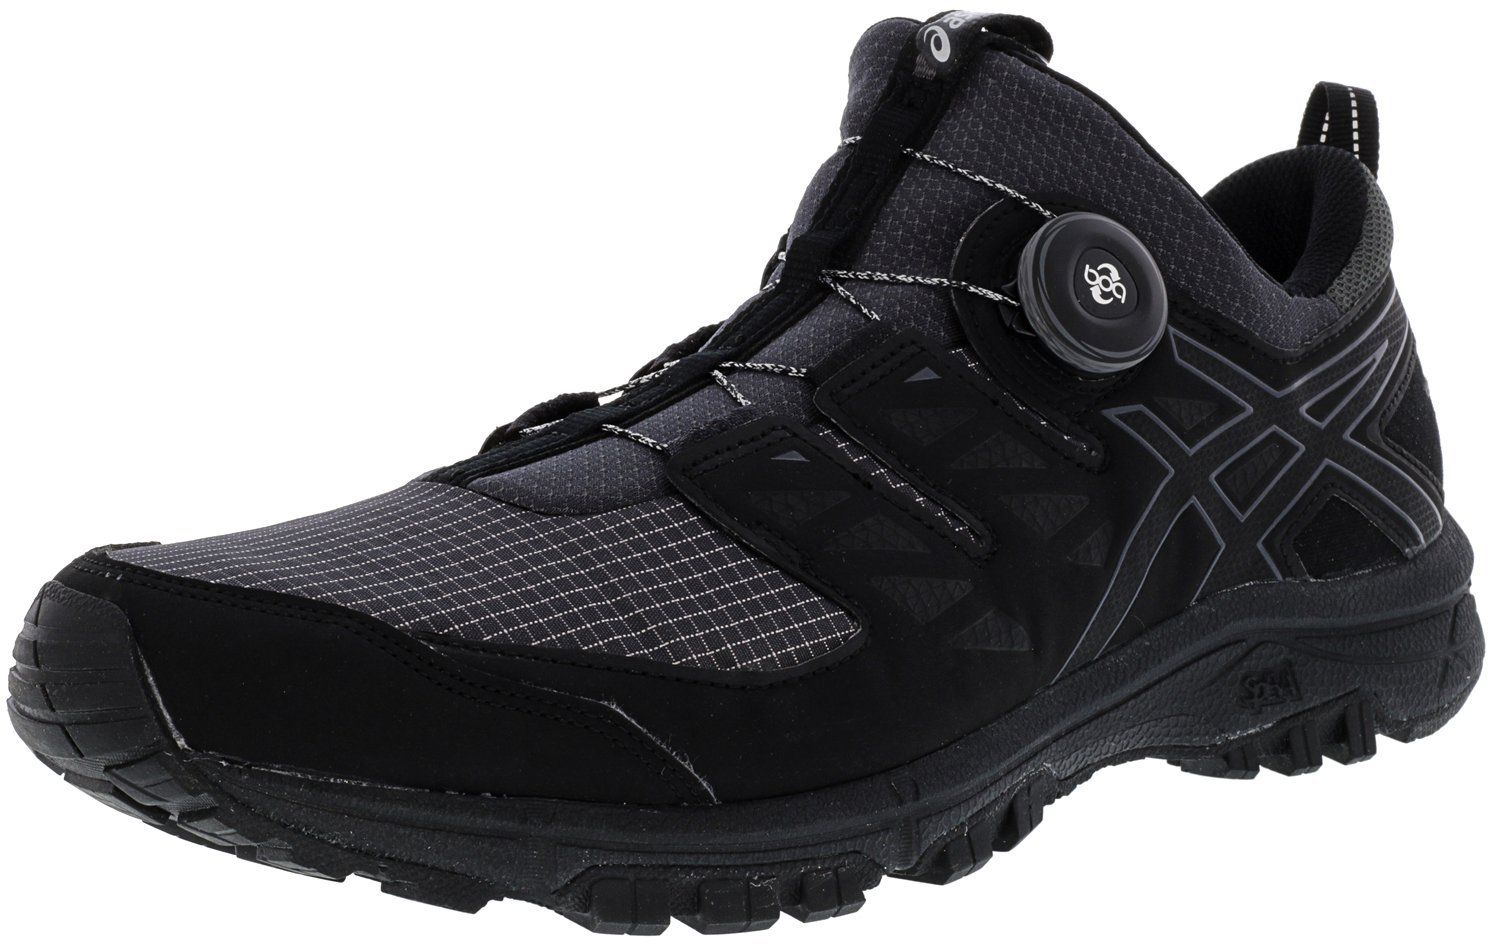 ASICS Men's Gel-FujiRado Trail Running Shoes B075QM5ZMH 14 D(M) US|Dark Grey/Black/Silver